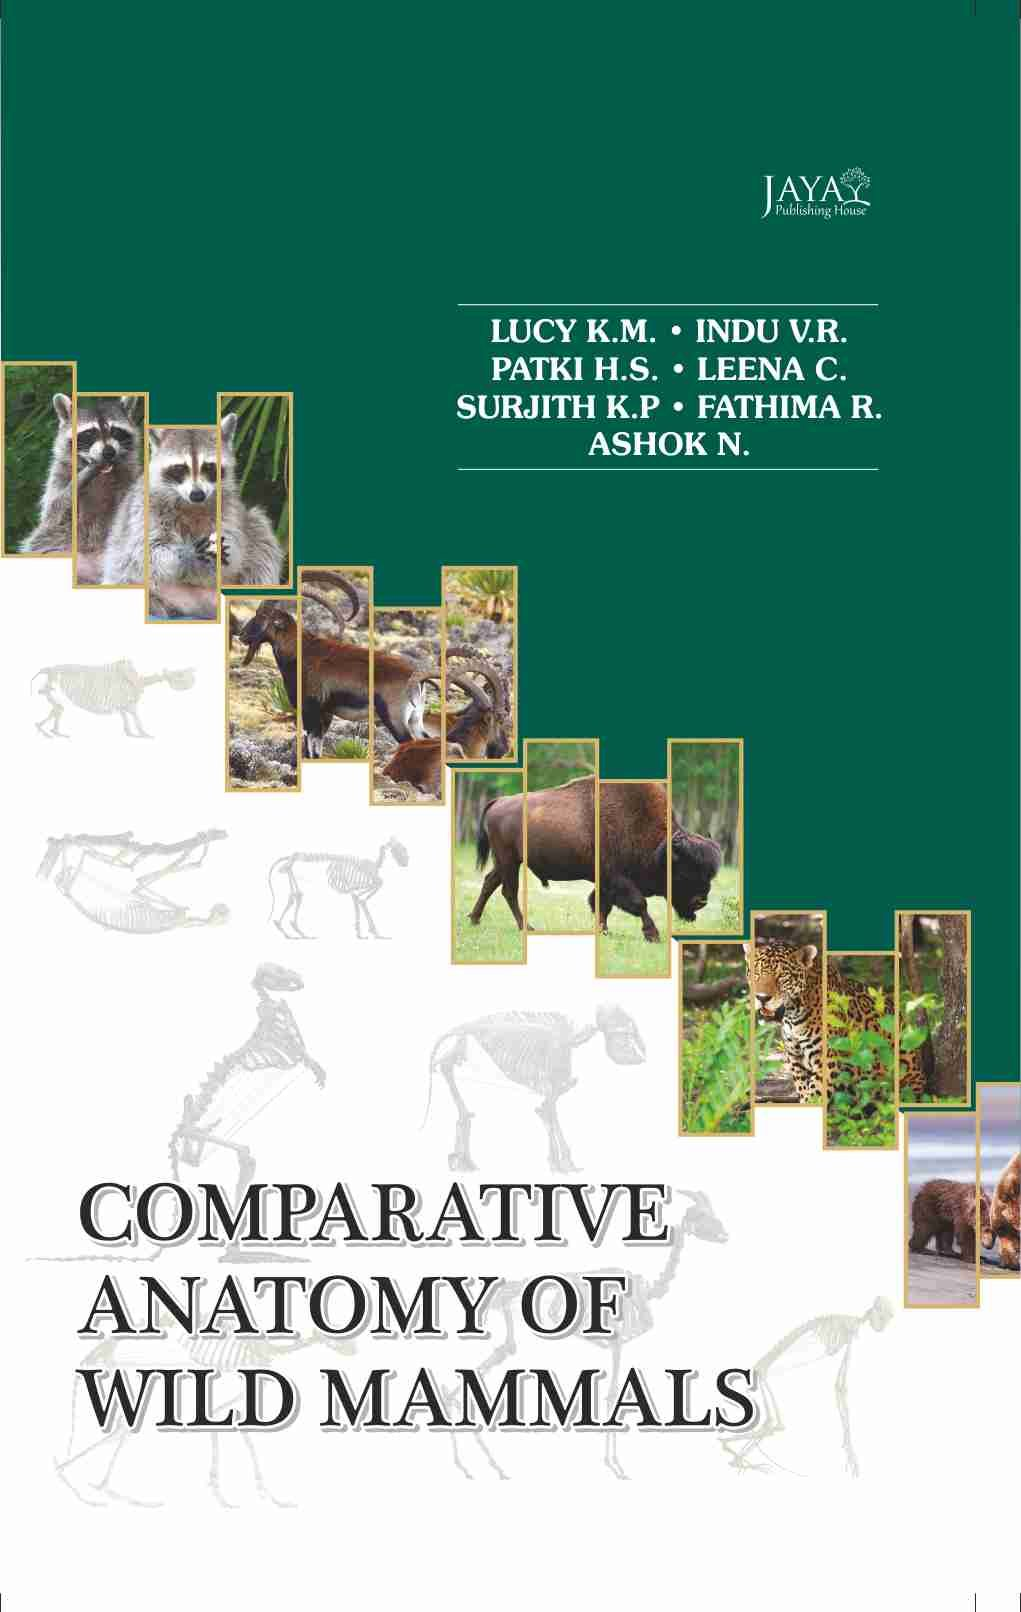 Comparative Anatomy of Wild Mammals